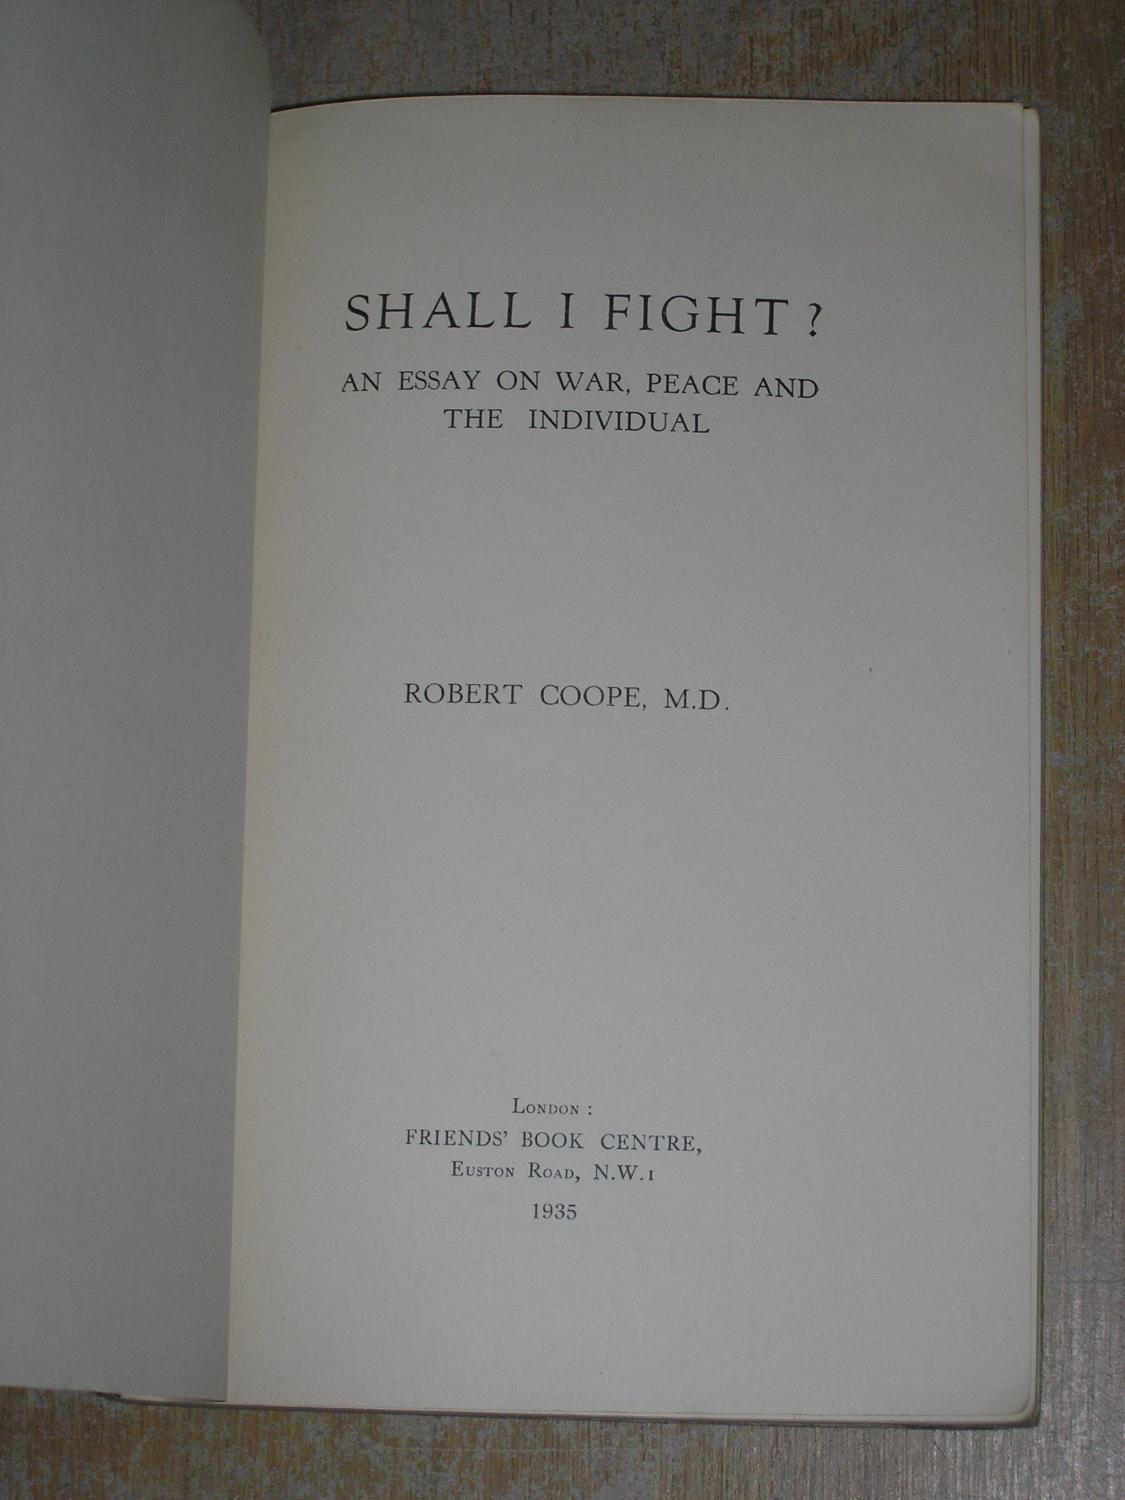 shall i fight an essay on war peace and the individual by robert view larger image